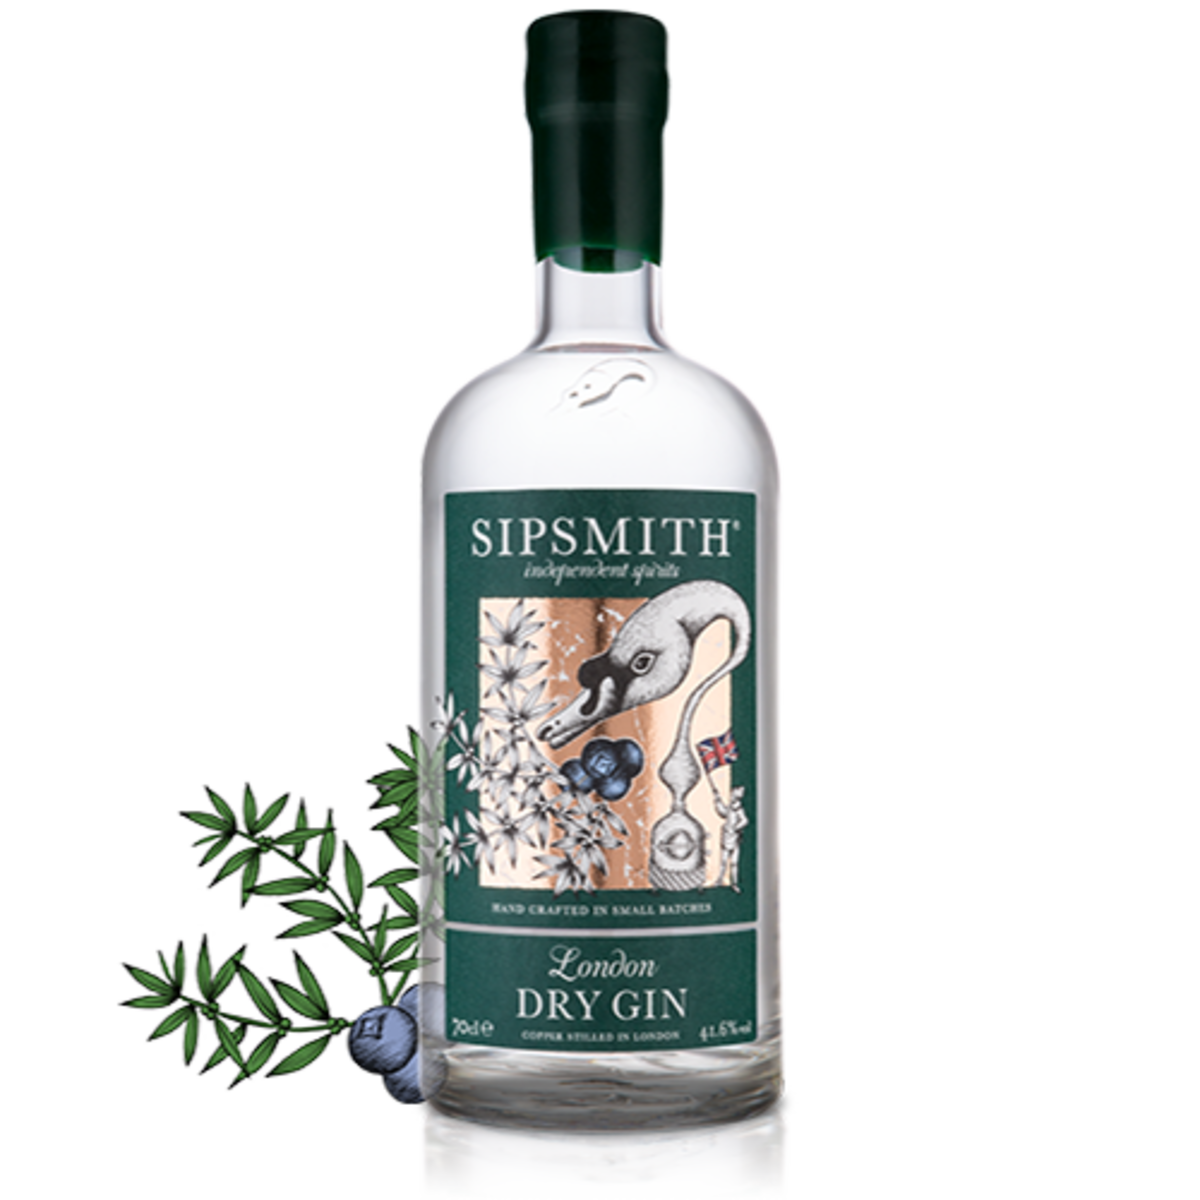 Sipsmith London Dry Gin. Sipsmith's first home was in the former abode of Michael Jackson (the UK whisky writer, not the US pop star). Starting with one still, called Prudence, they quickly expanded operations as the popularity of their products grew